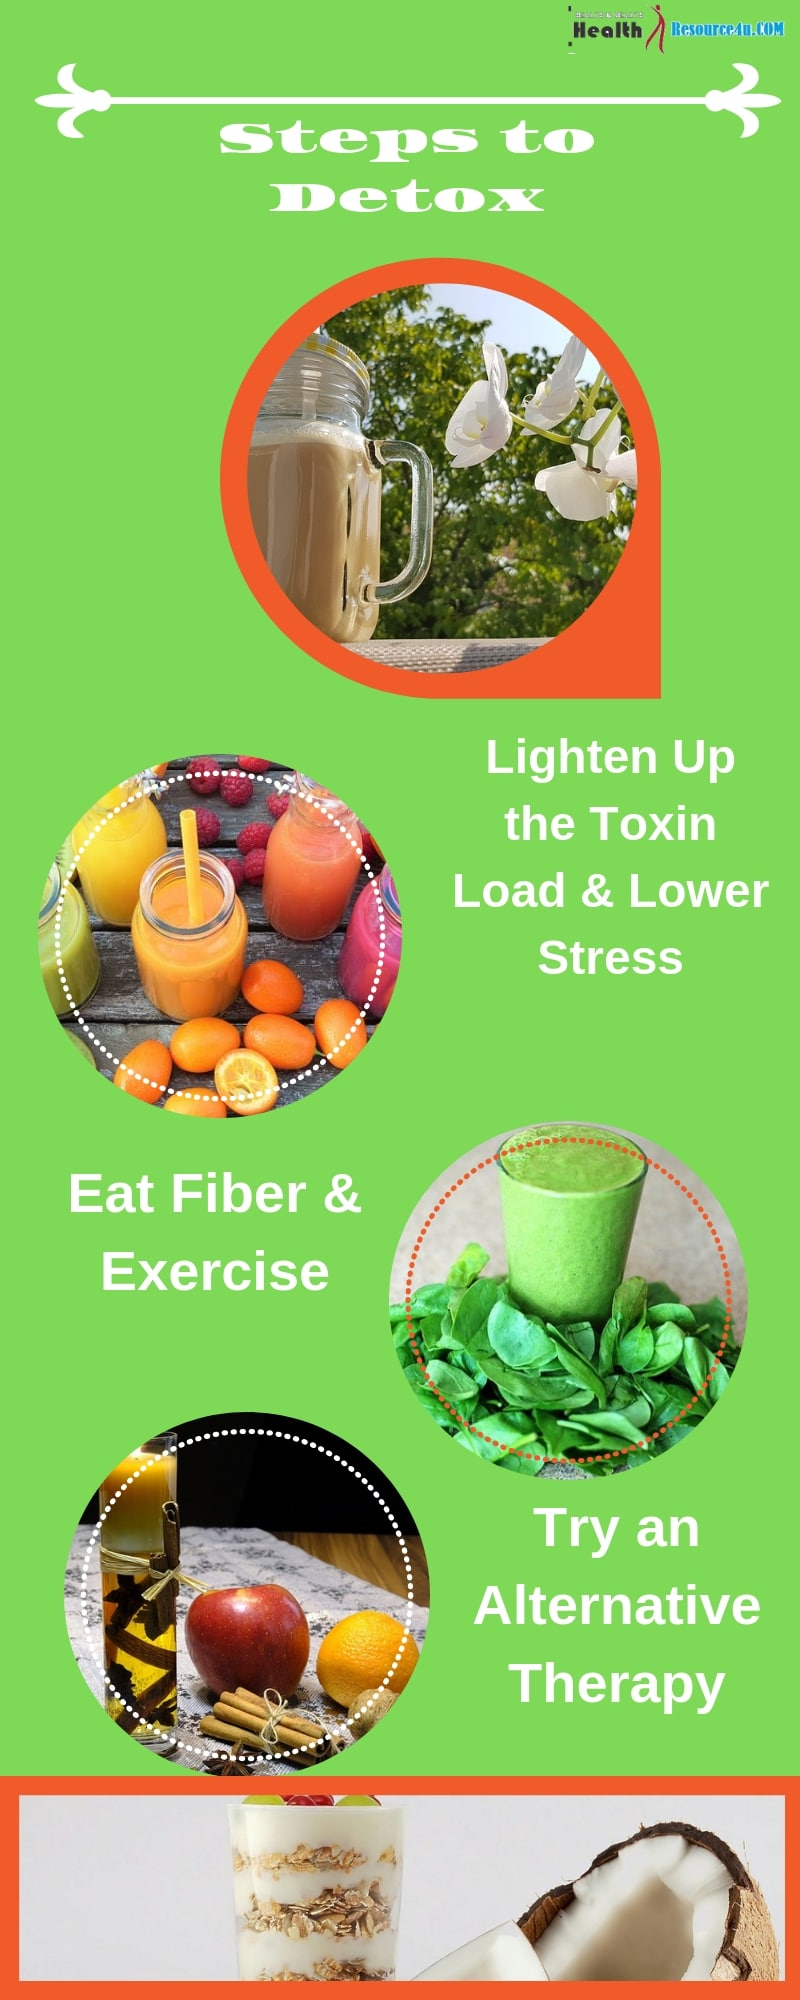 Lighten Up the Toxin Load